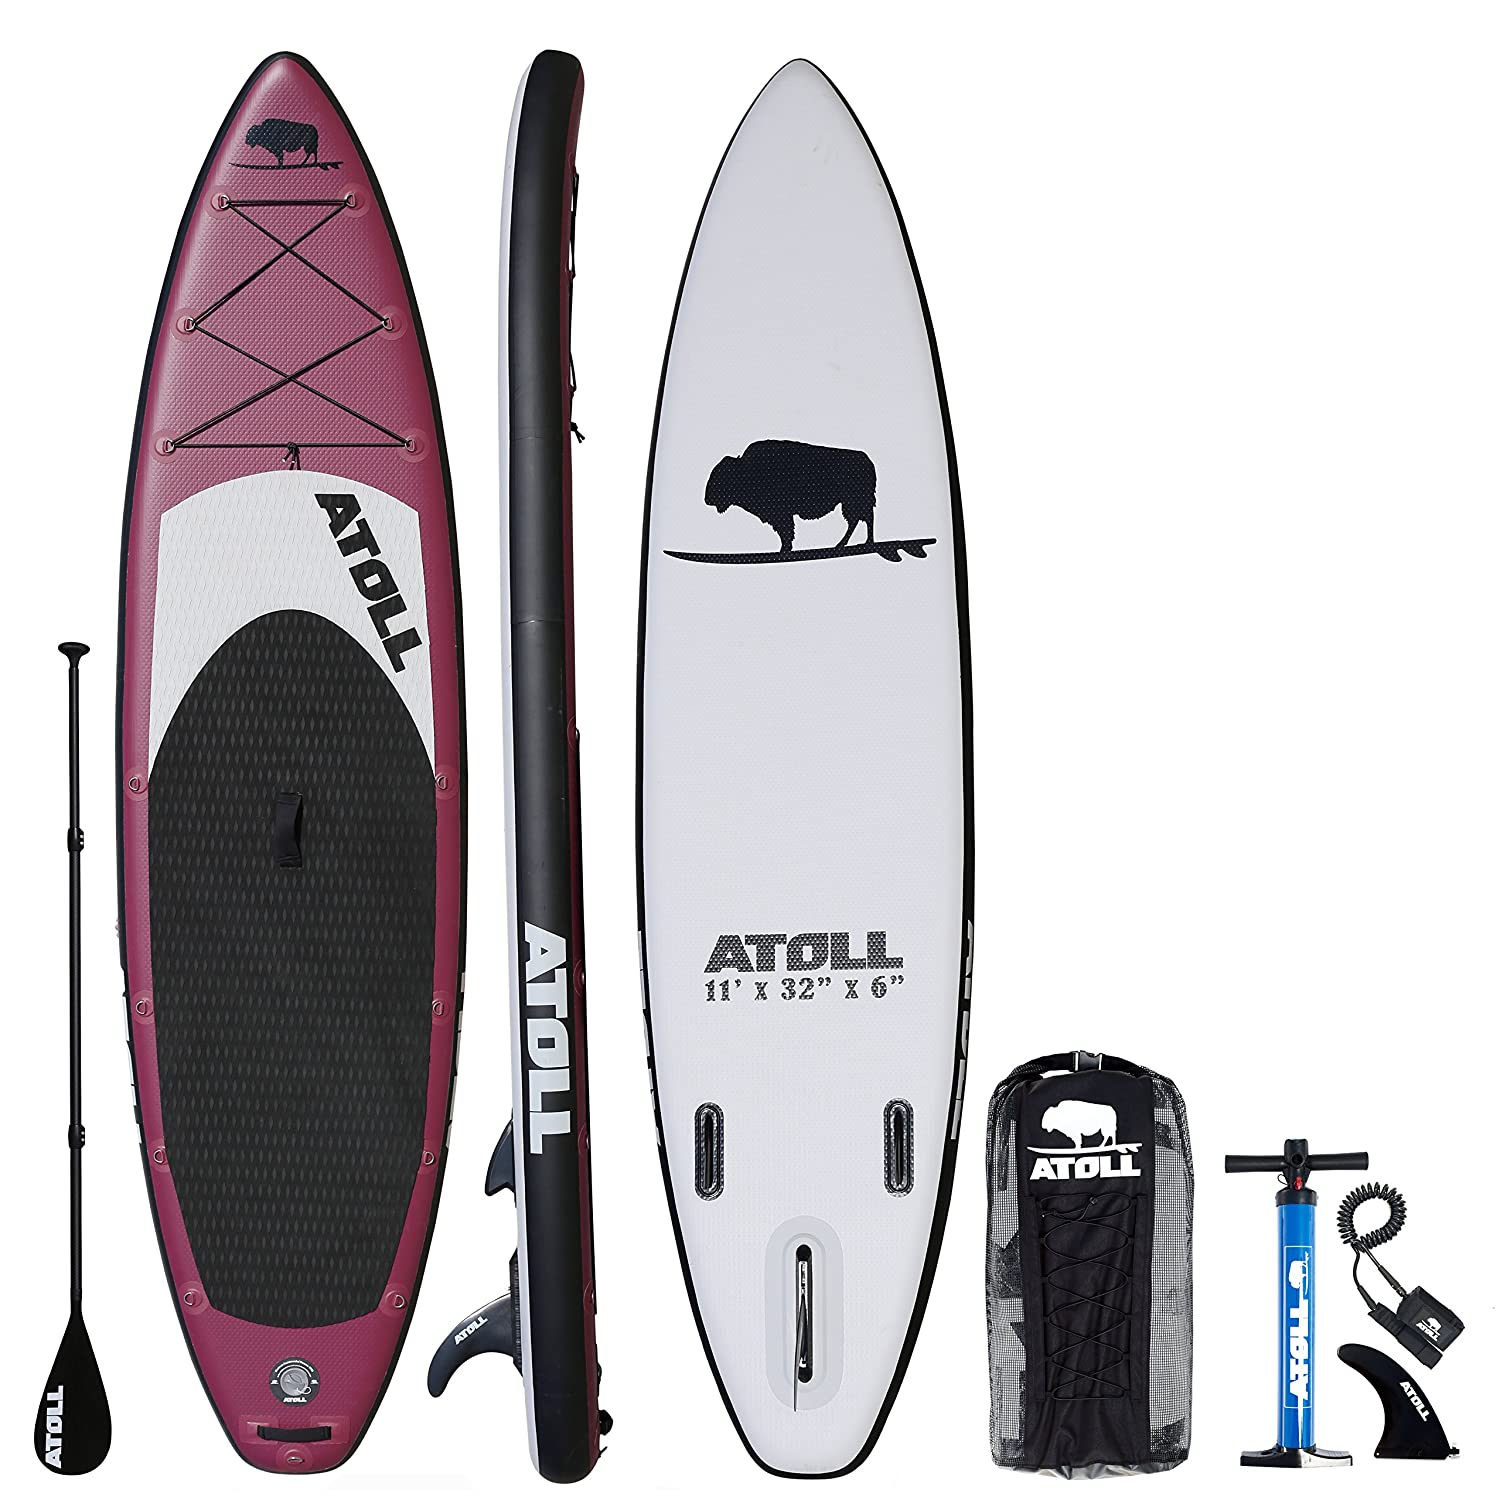 Atoll Paddle Inflatable SUP Review